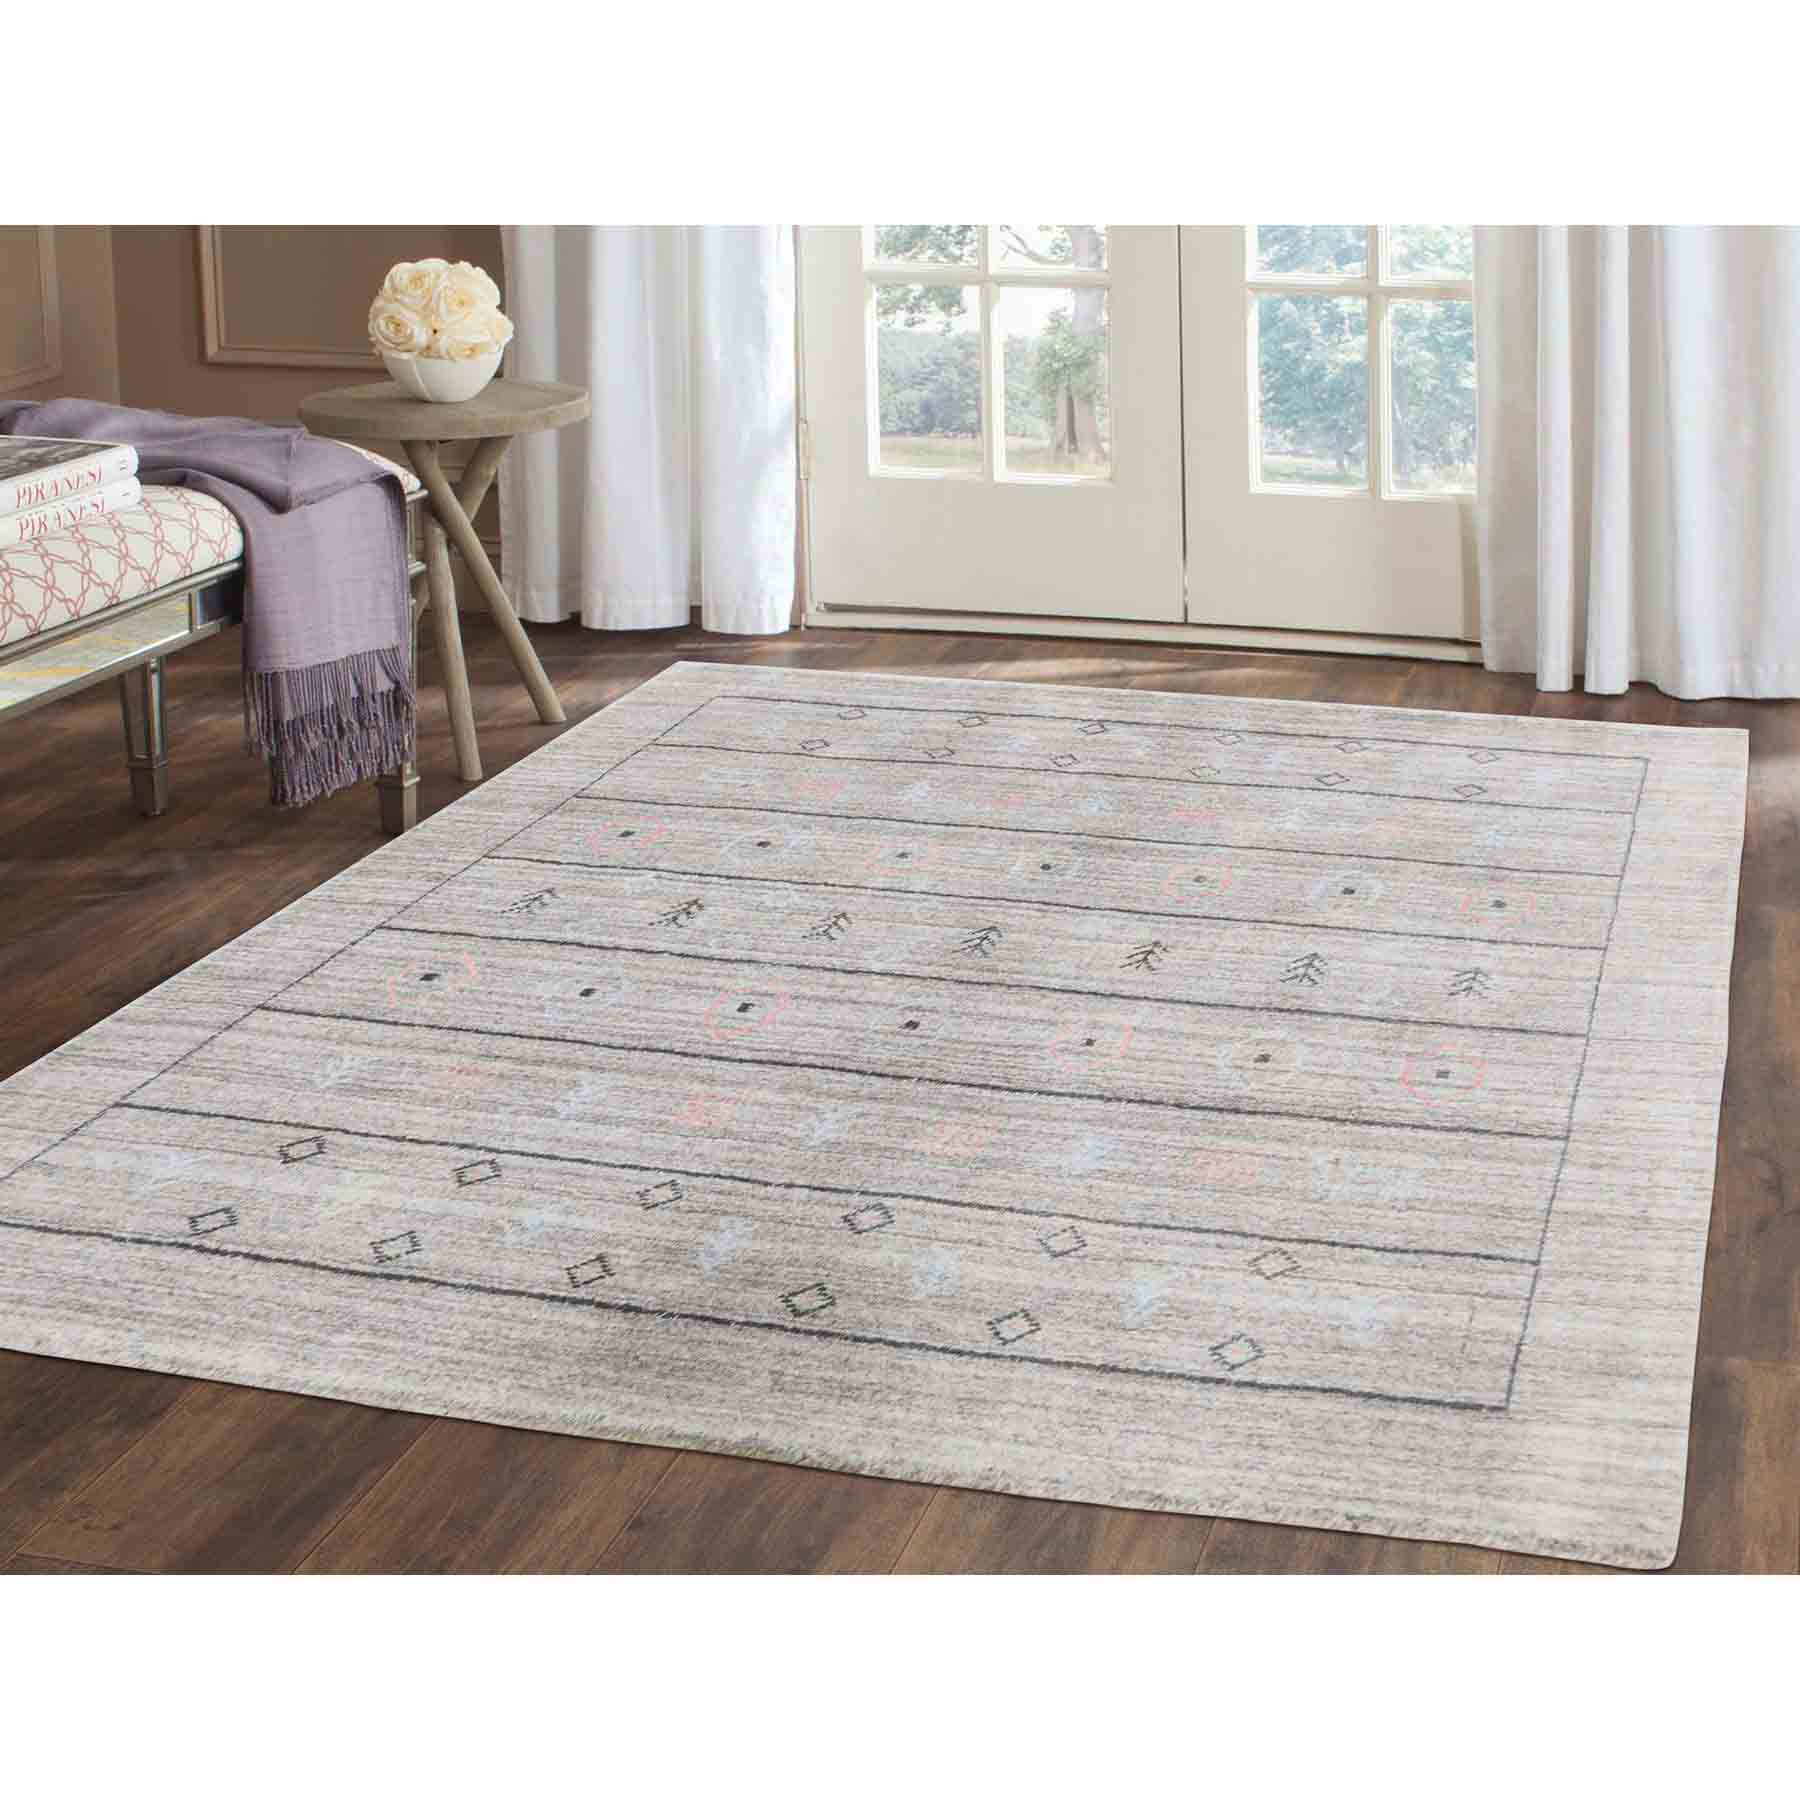 Modern-and-Contemporary-Hand-Loomed-Rug-230060